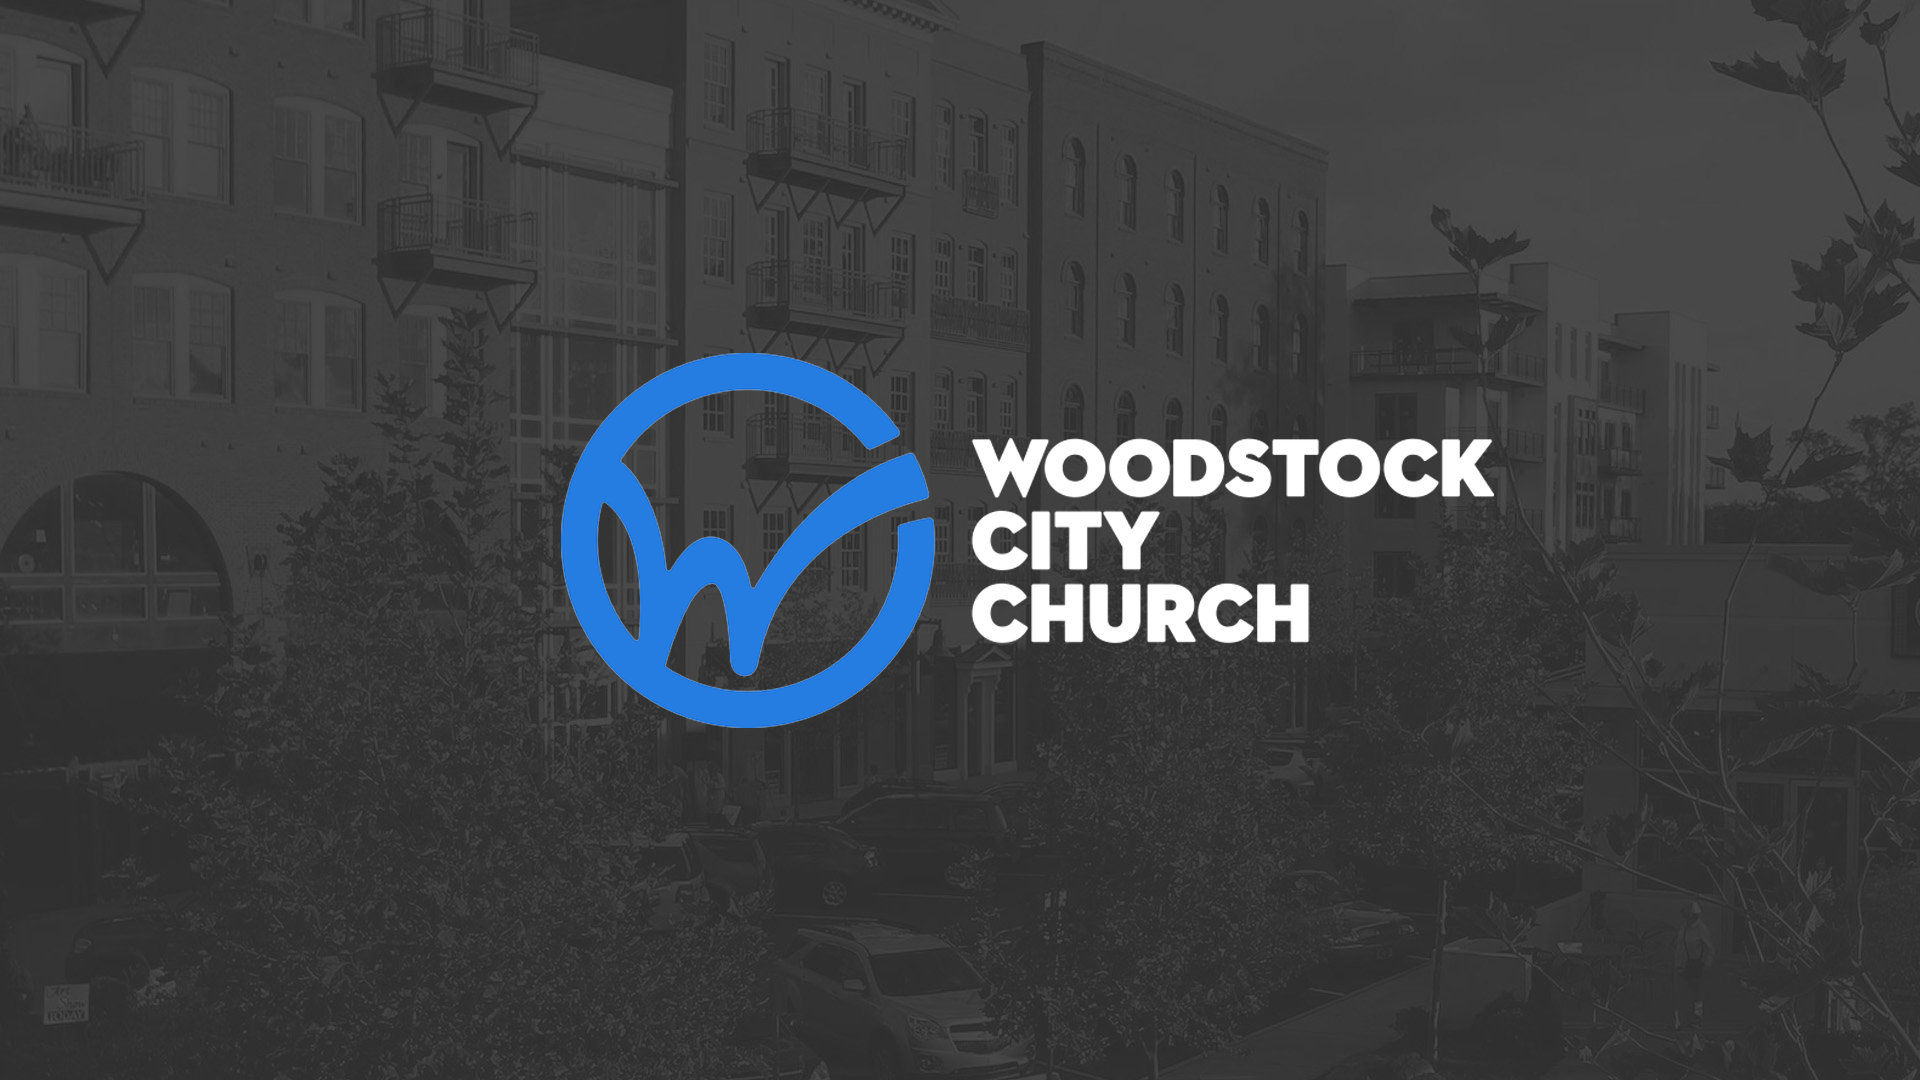 Woodstock City Church